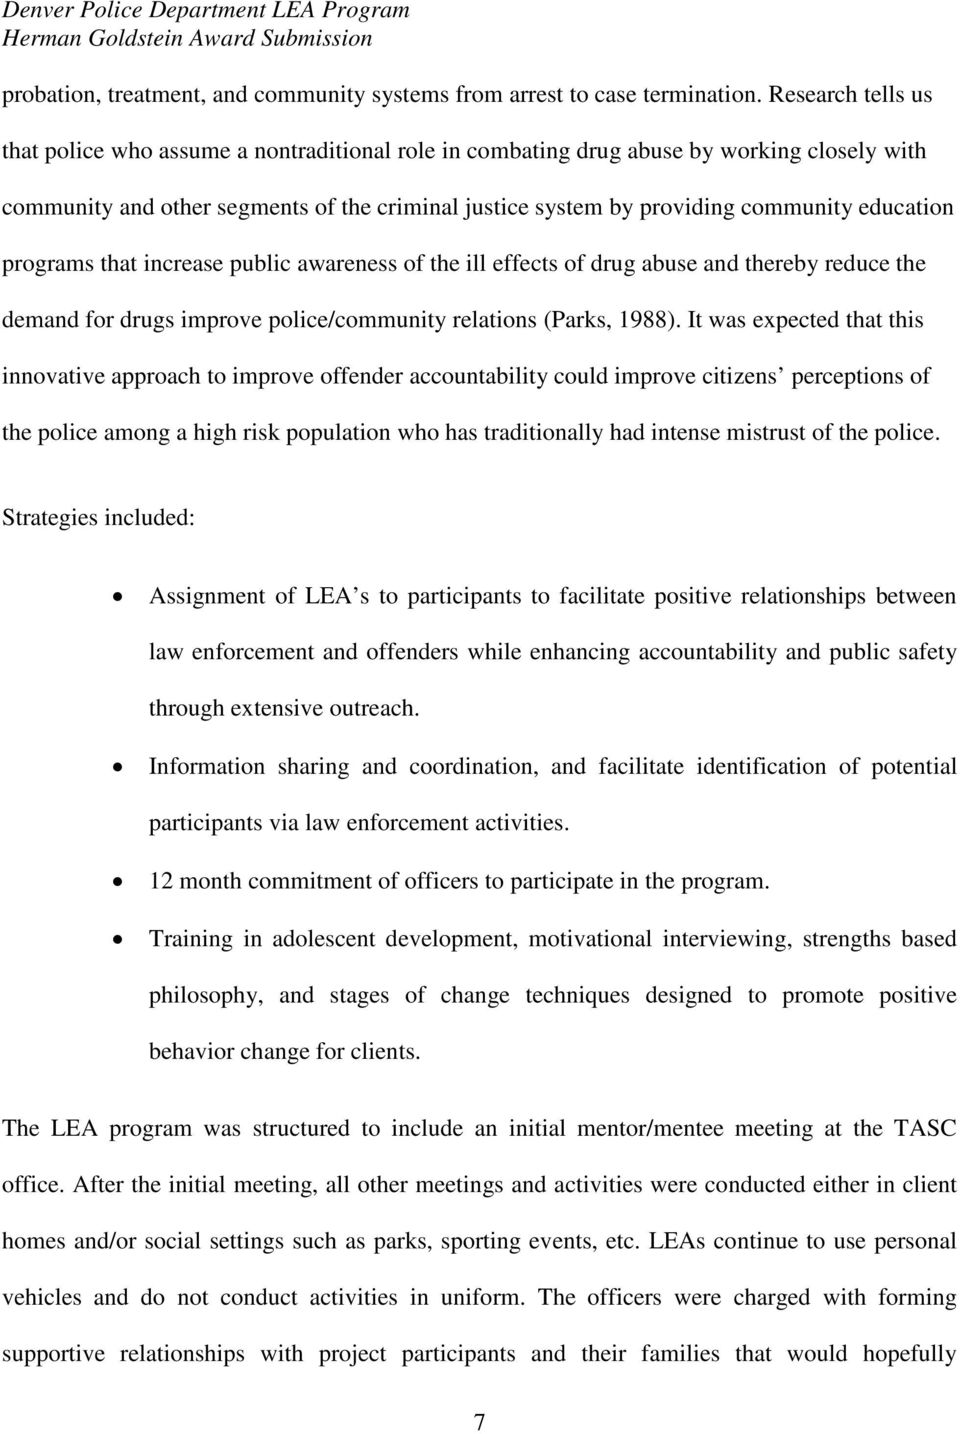 education programs that increase public awareness of the ill effects of drug abuse and thereby reduce the demand for drugs improve police/community relations (Parks, 1988).